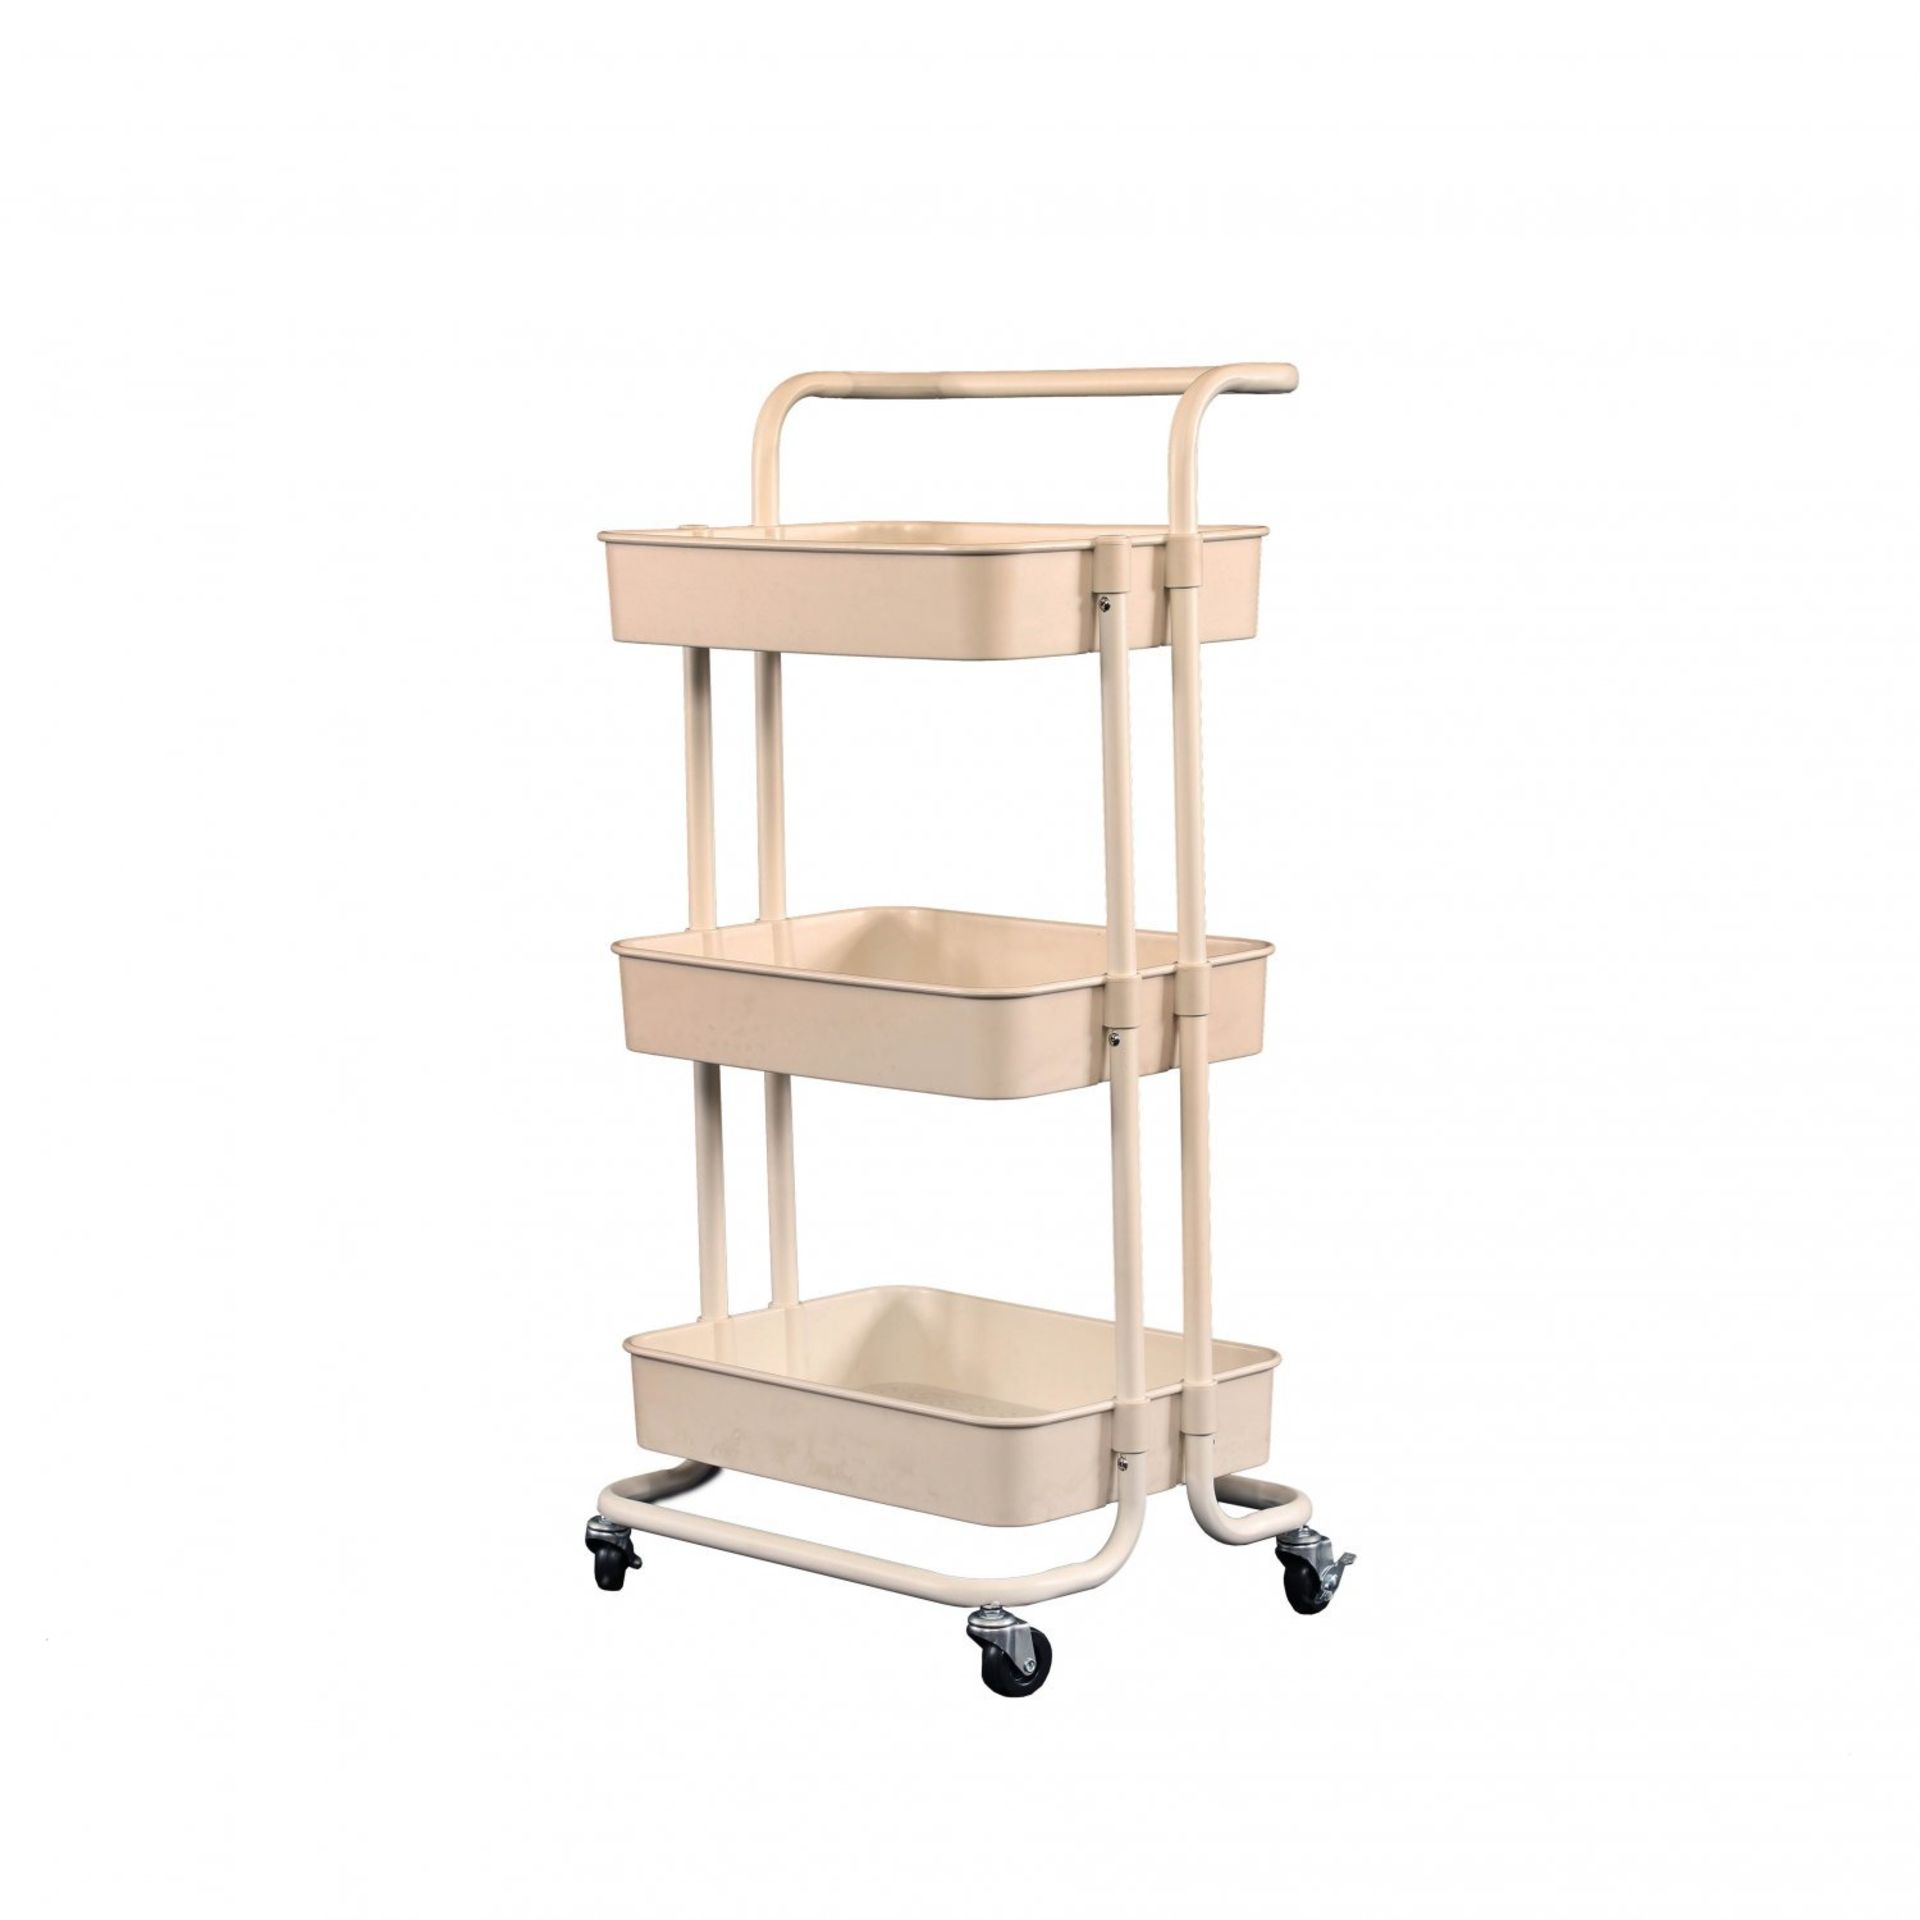 Lot 188 - (RL121) 3 Tier Household Kitchen Bathroom Storage Trolley Cart Shelf The storage trolley is ...